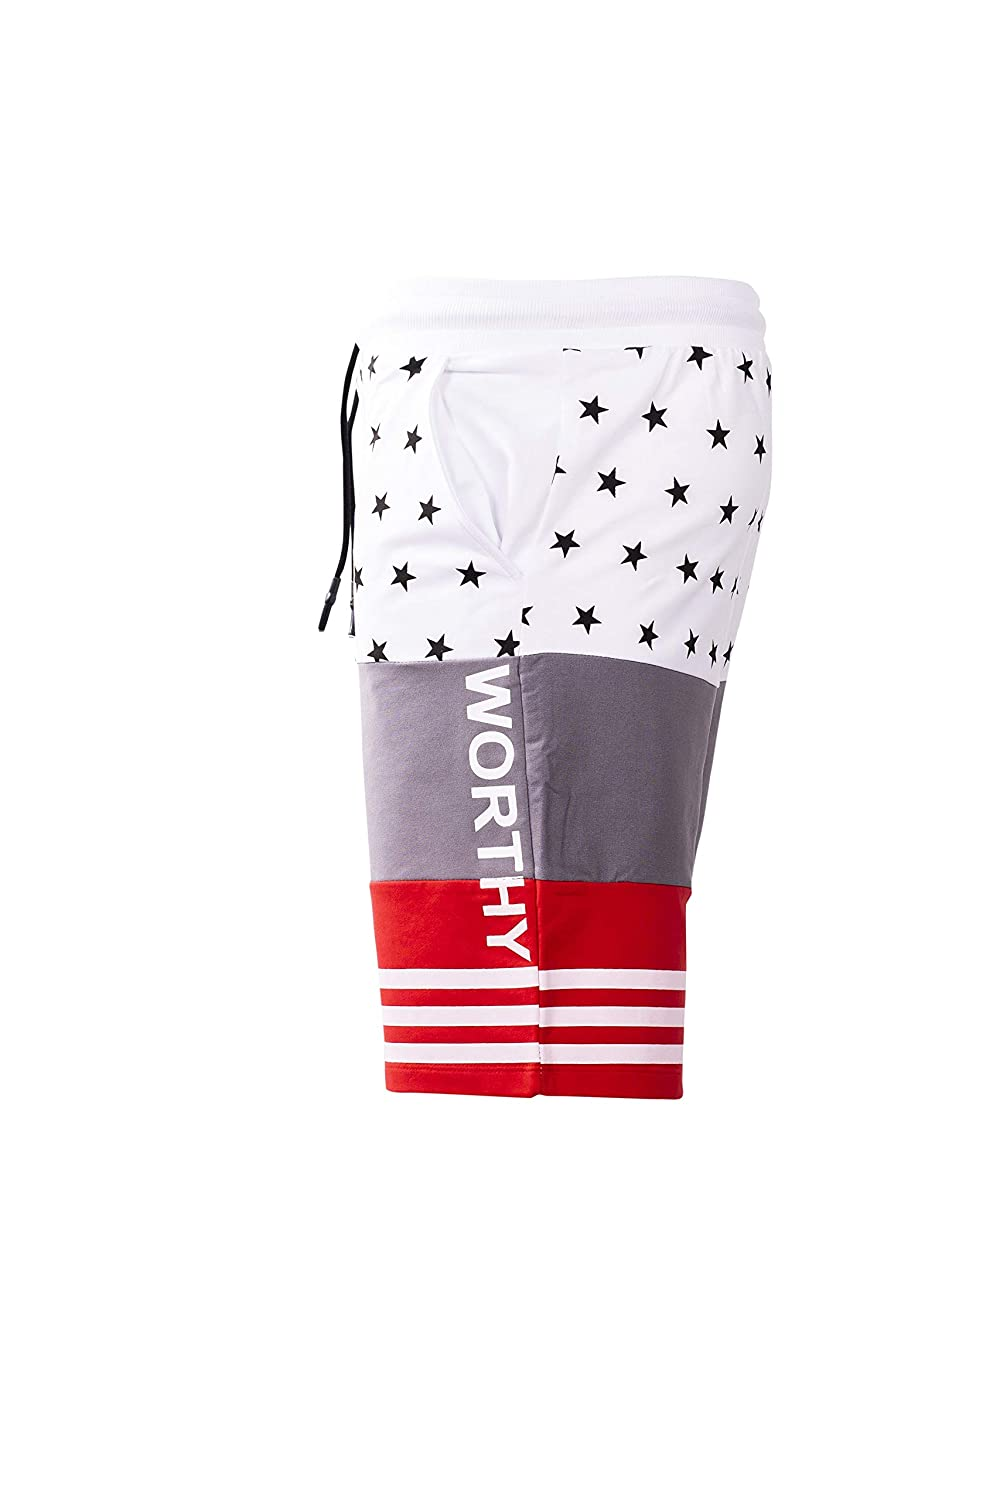 Worthy Mens Color Block Stars and Stripes Knit Short